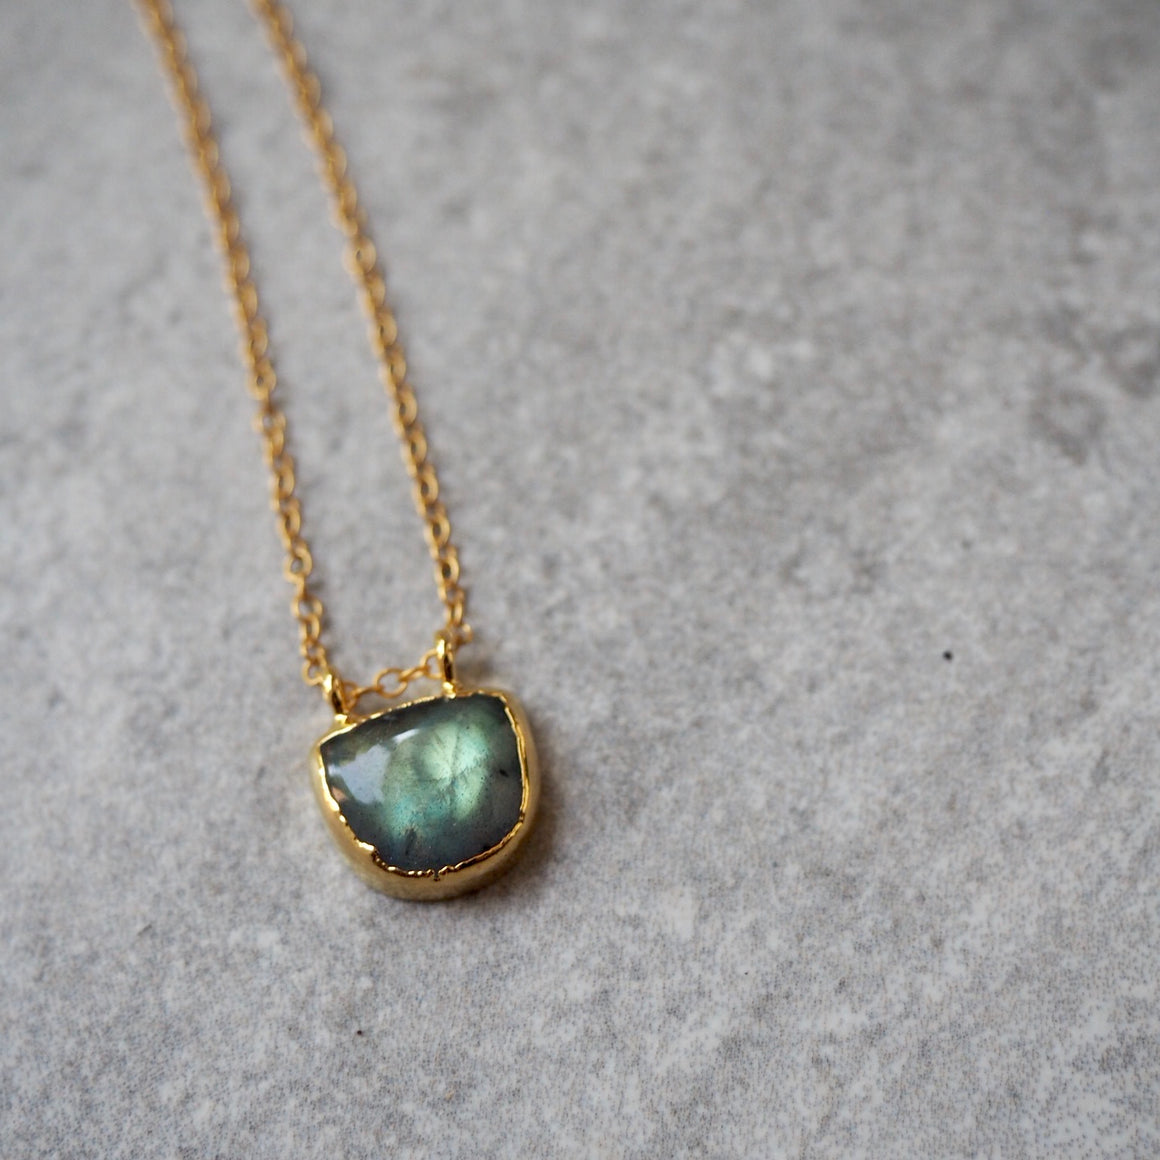 Labradorite gold necklace by Wallis Designs